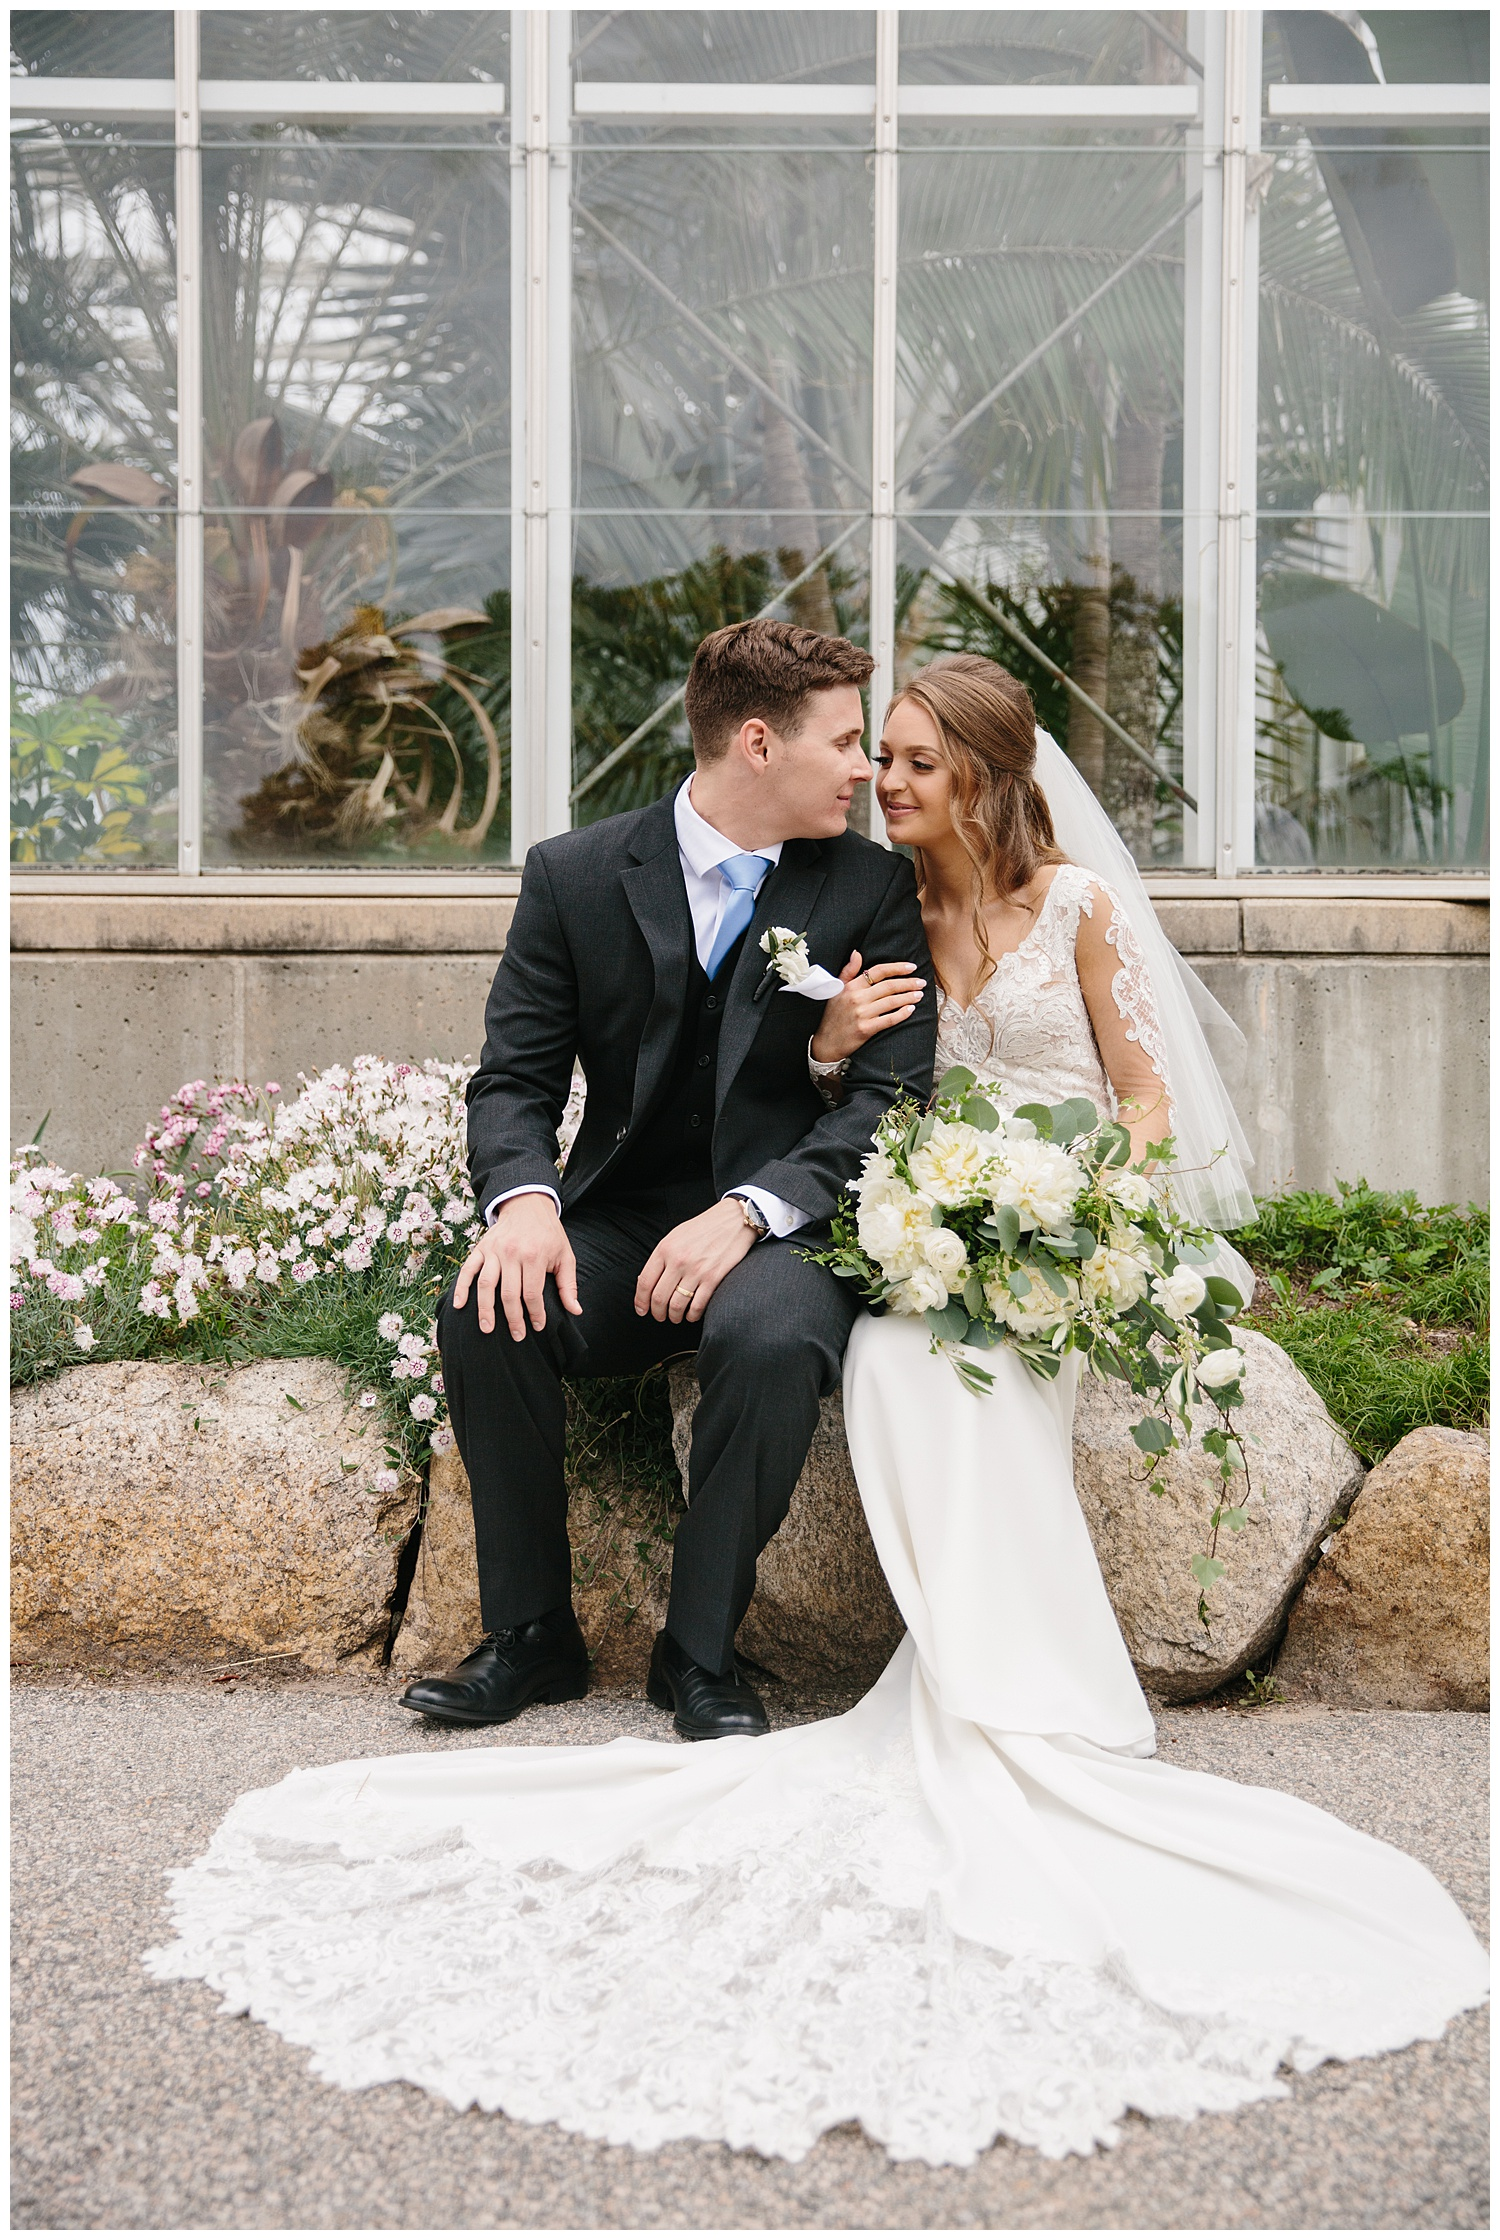 Tyler + Brynn + Botanical Gardens + Roger Williams + Rhode Island + Wedding_0099.jpg